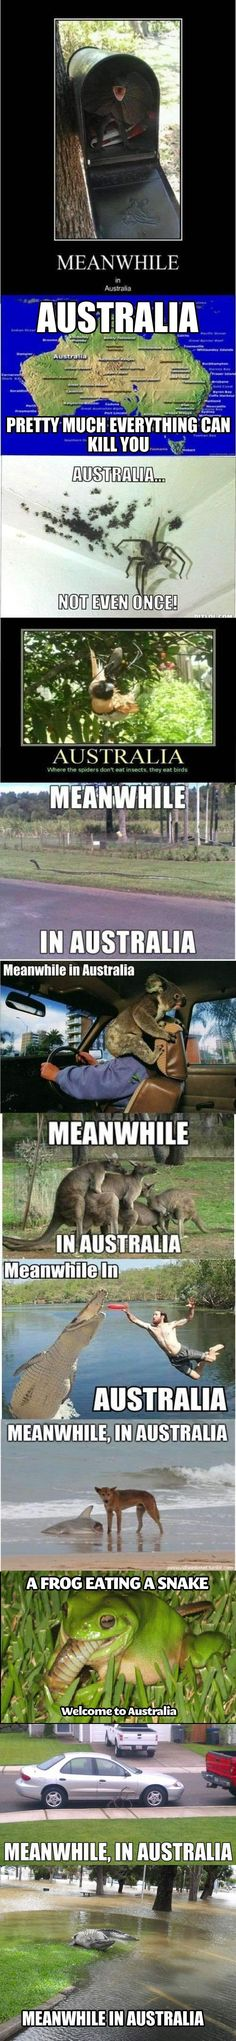 Meanwhile in Australia compilation… @Katie Schmeltzer Schmeltzer Lubins Yeah let's never go to Australia. EVER.